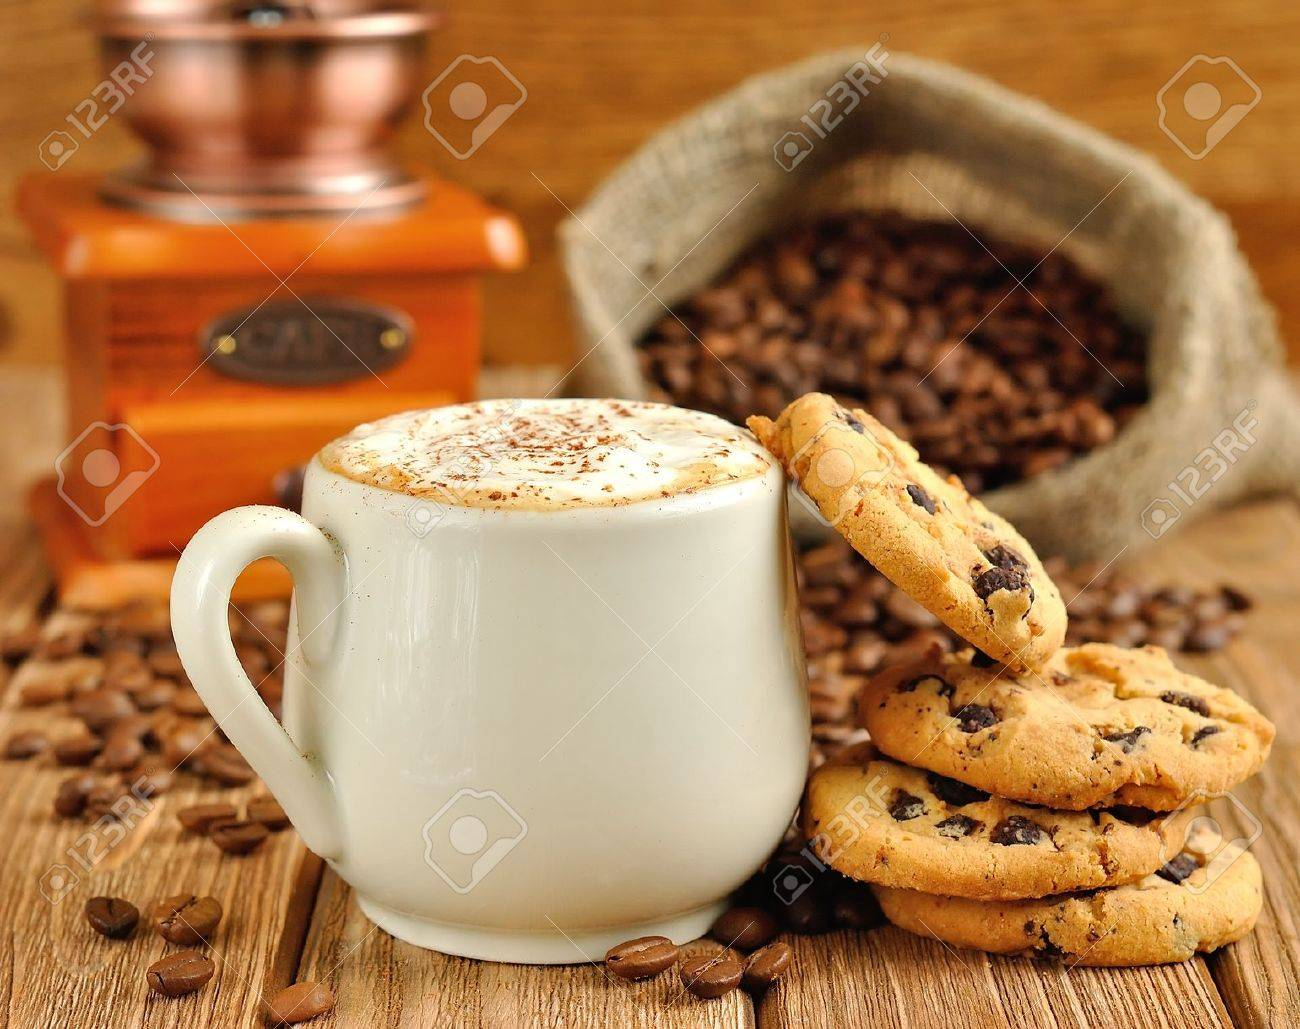 Cookie Coffee Cups Black And White Cookies Images Stock Pictures Royalty Free